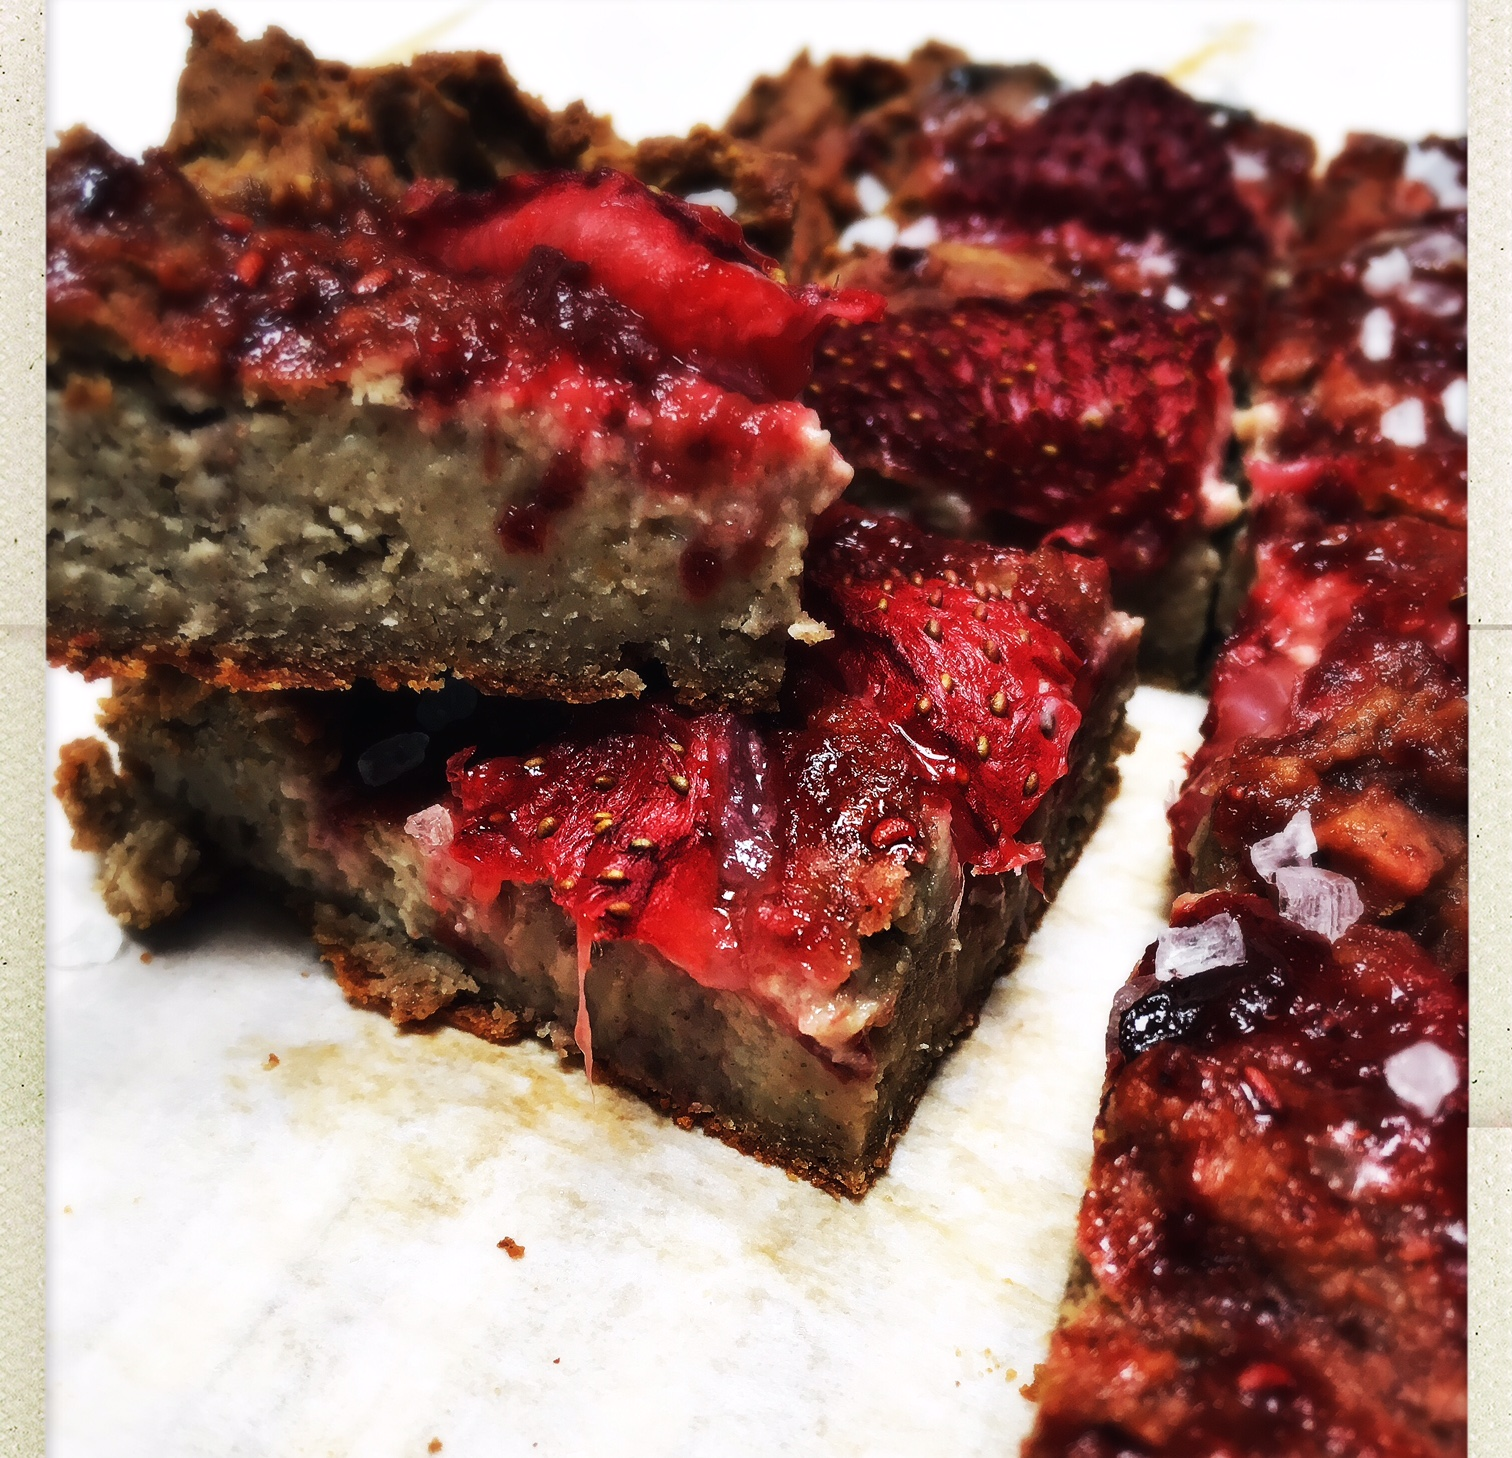 peanut butter and jelly bars 3.jpg